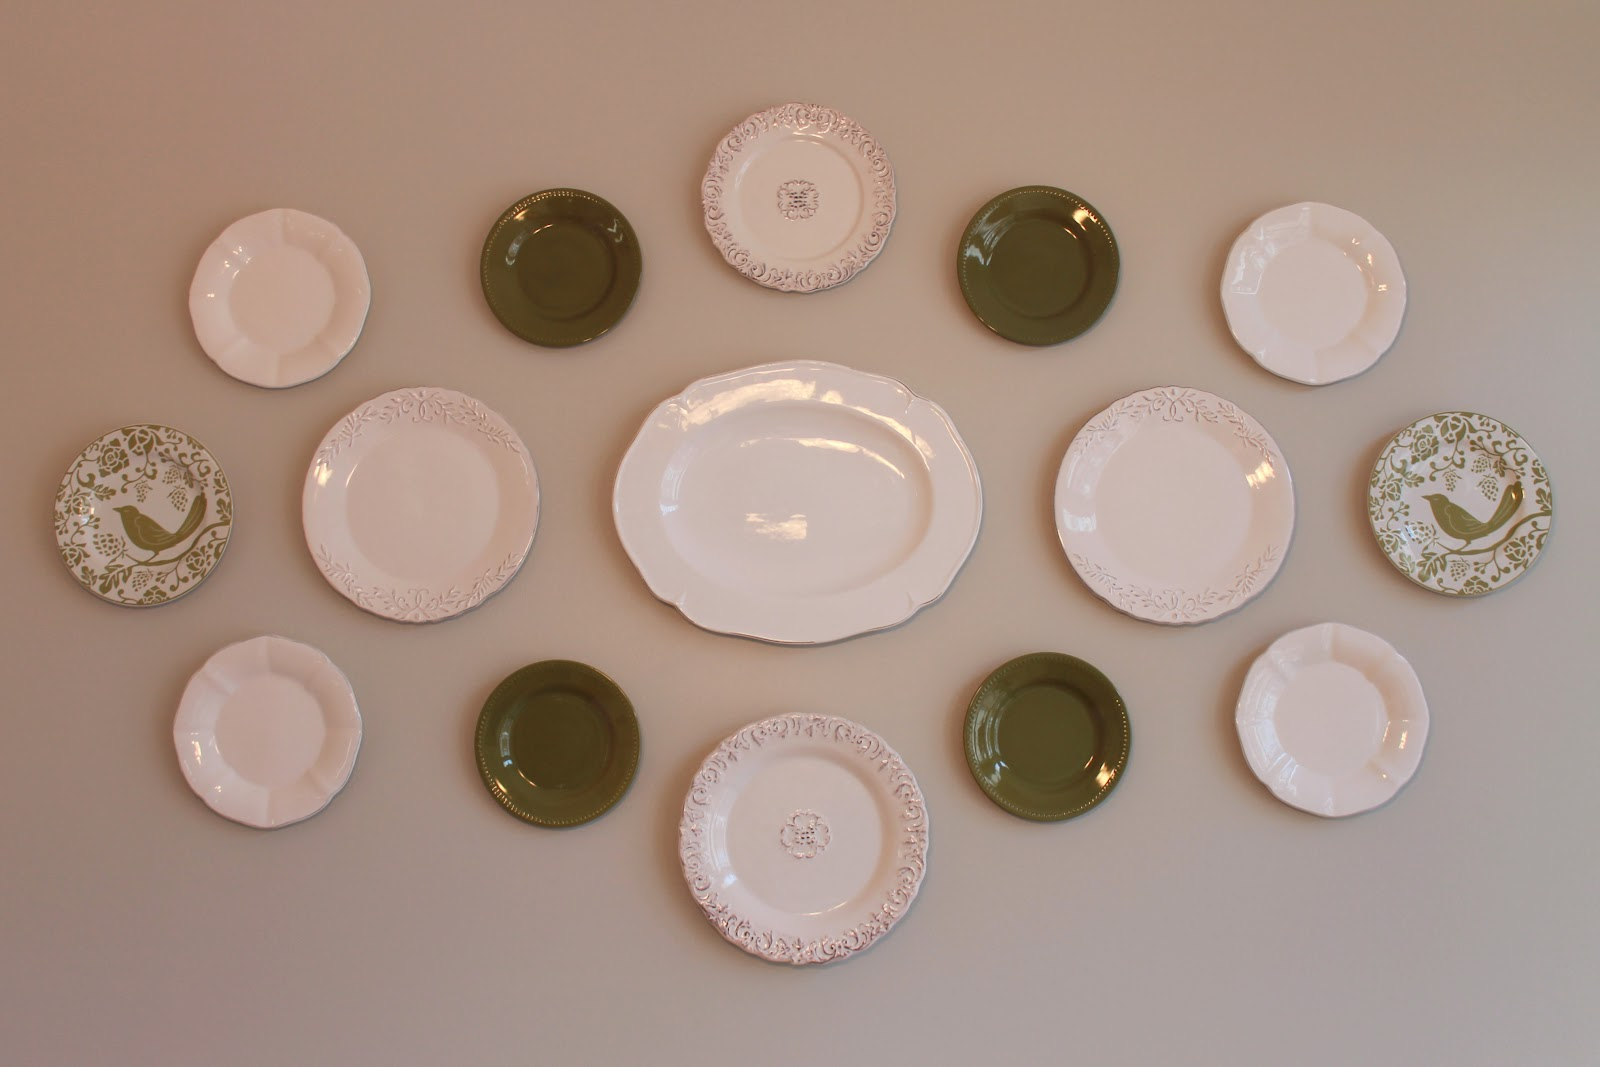 How To Display Bowls Serving Pink Lemonade Plate Display